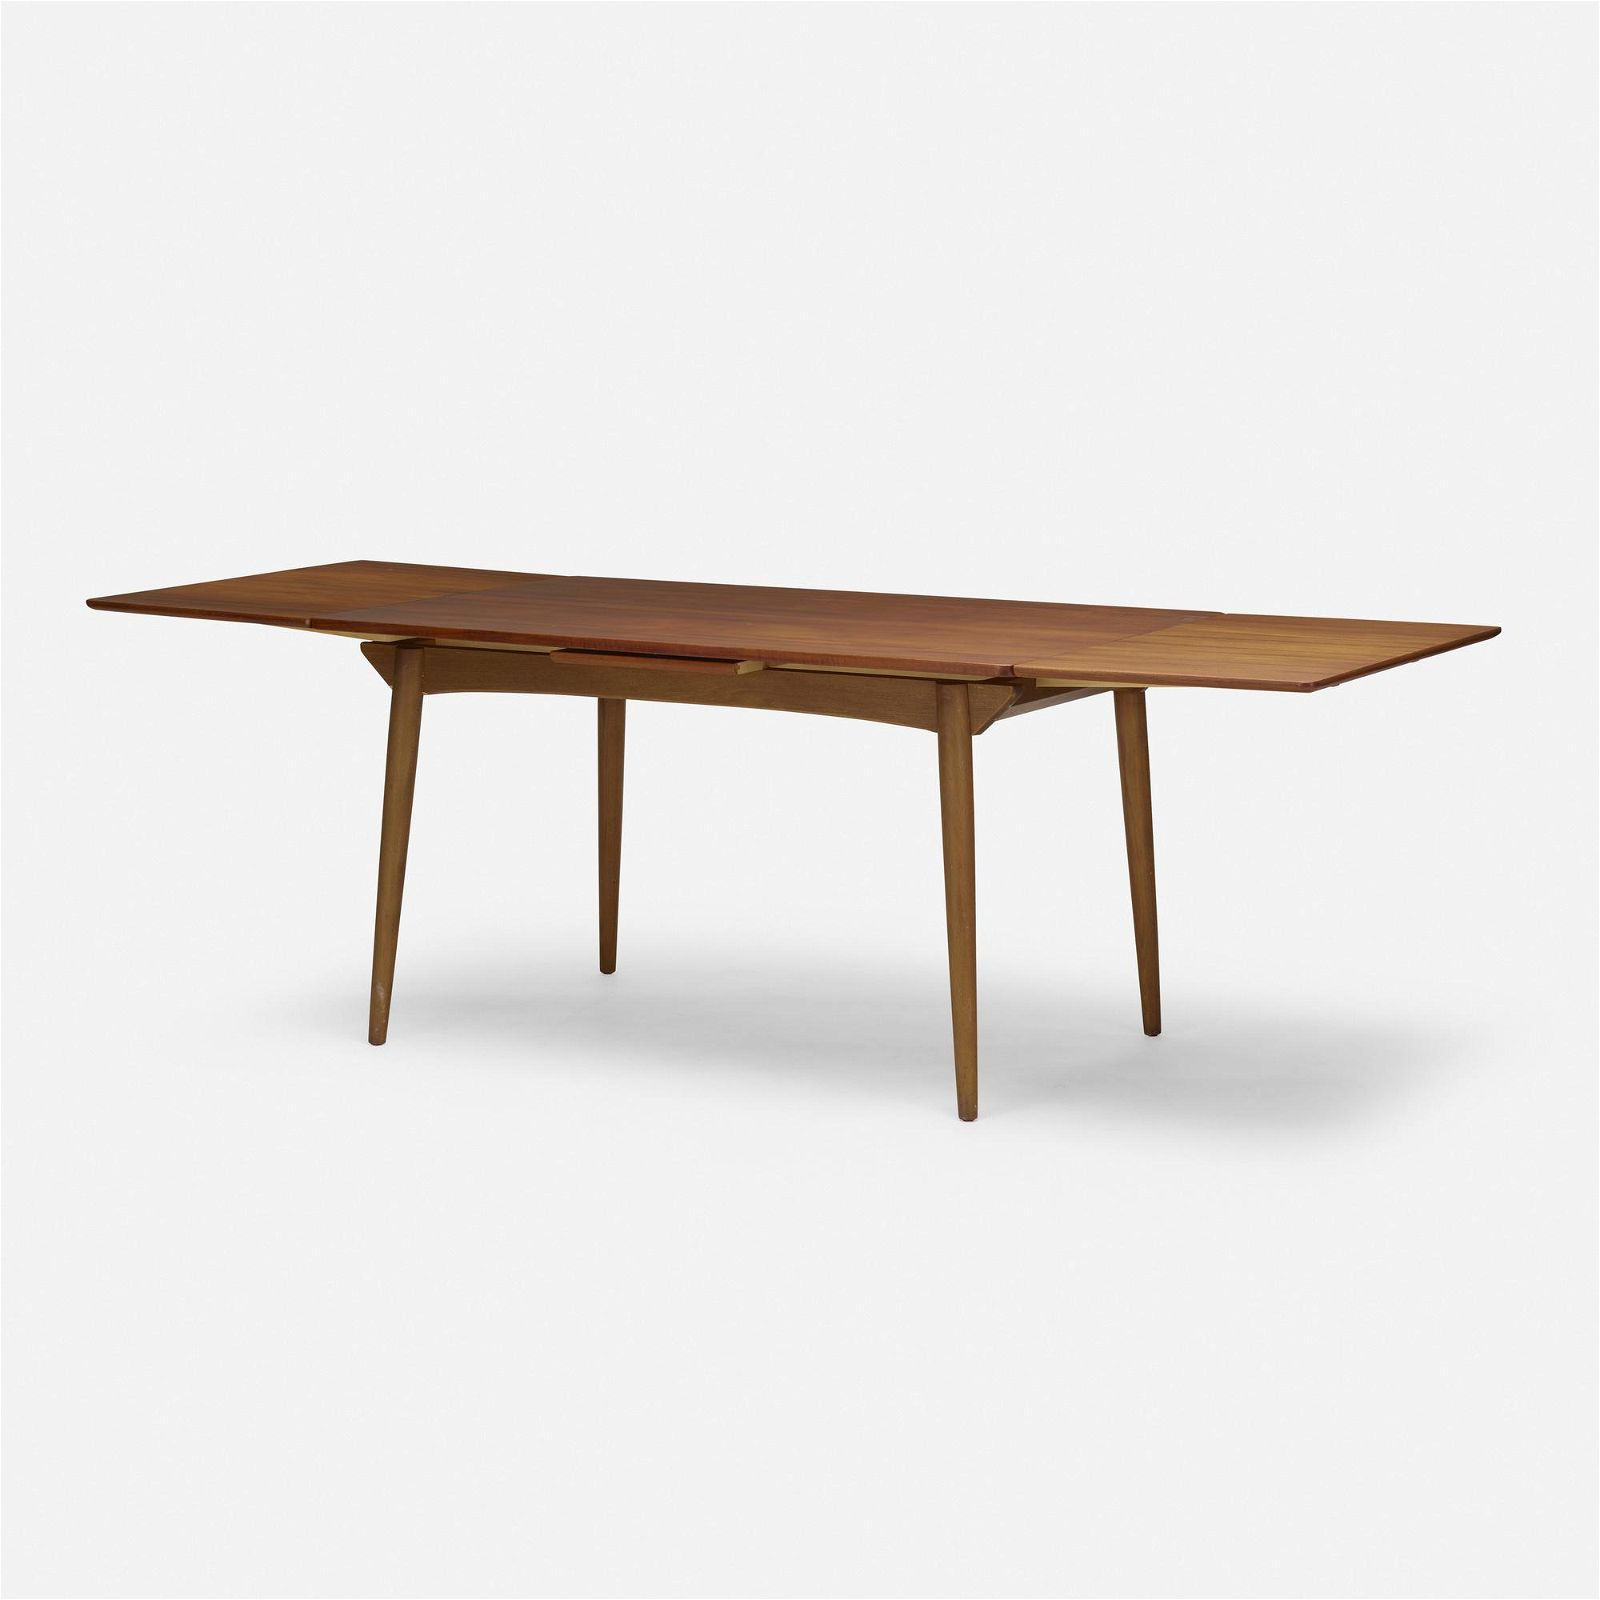 Singer & Sons, Dining table